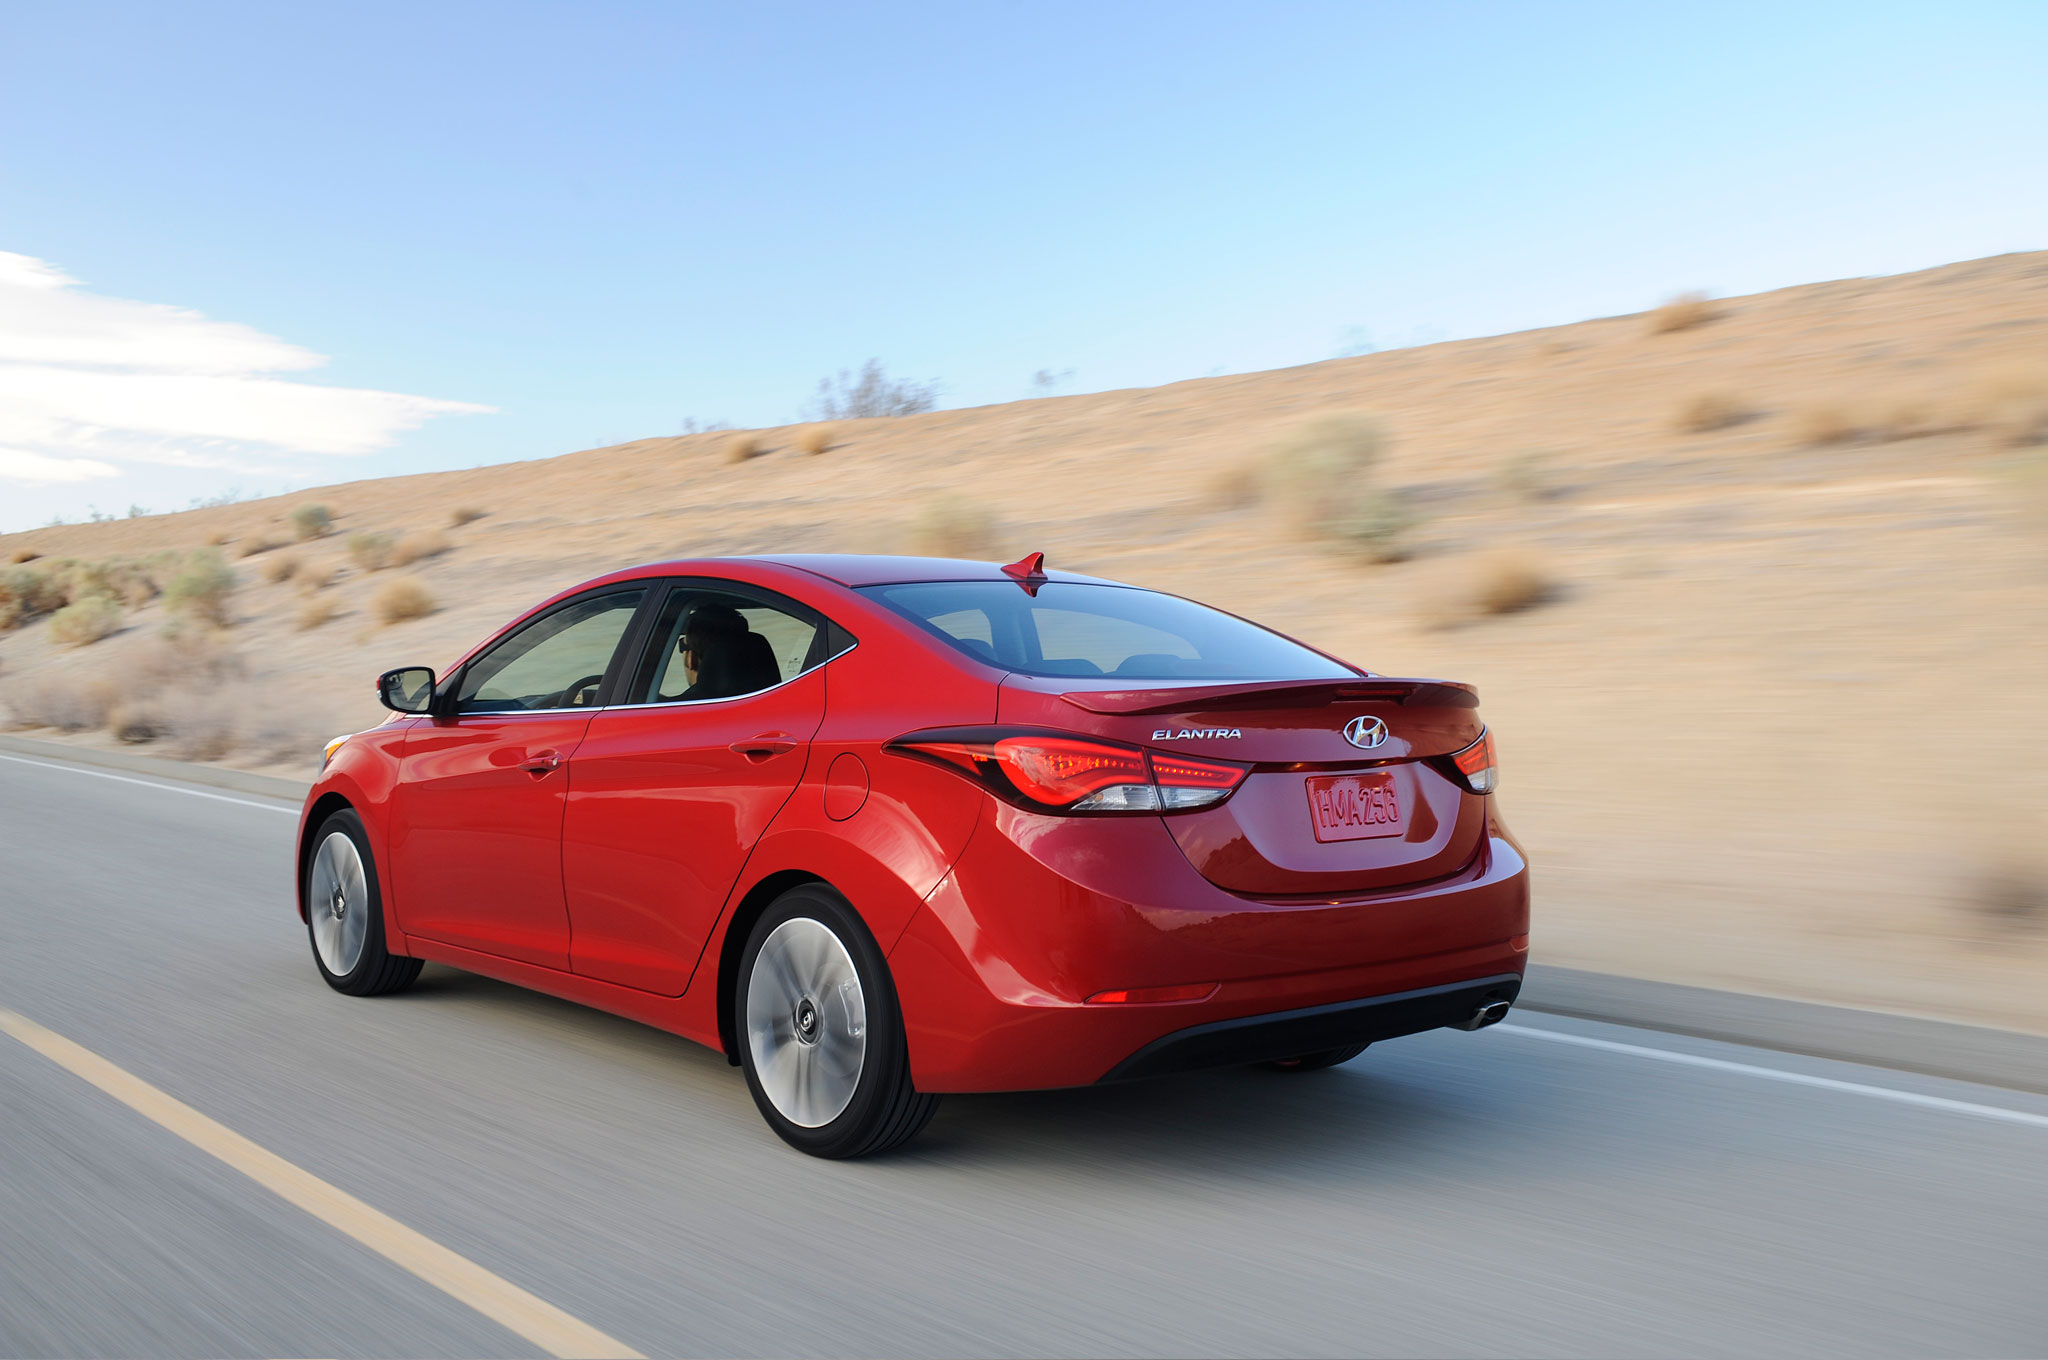 test of sport expert hyundai review drive elantra